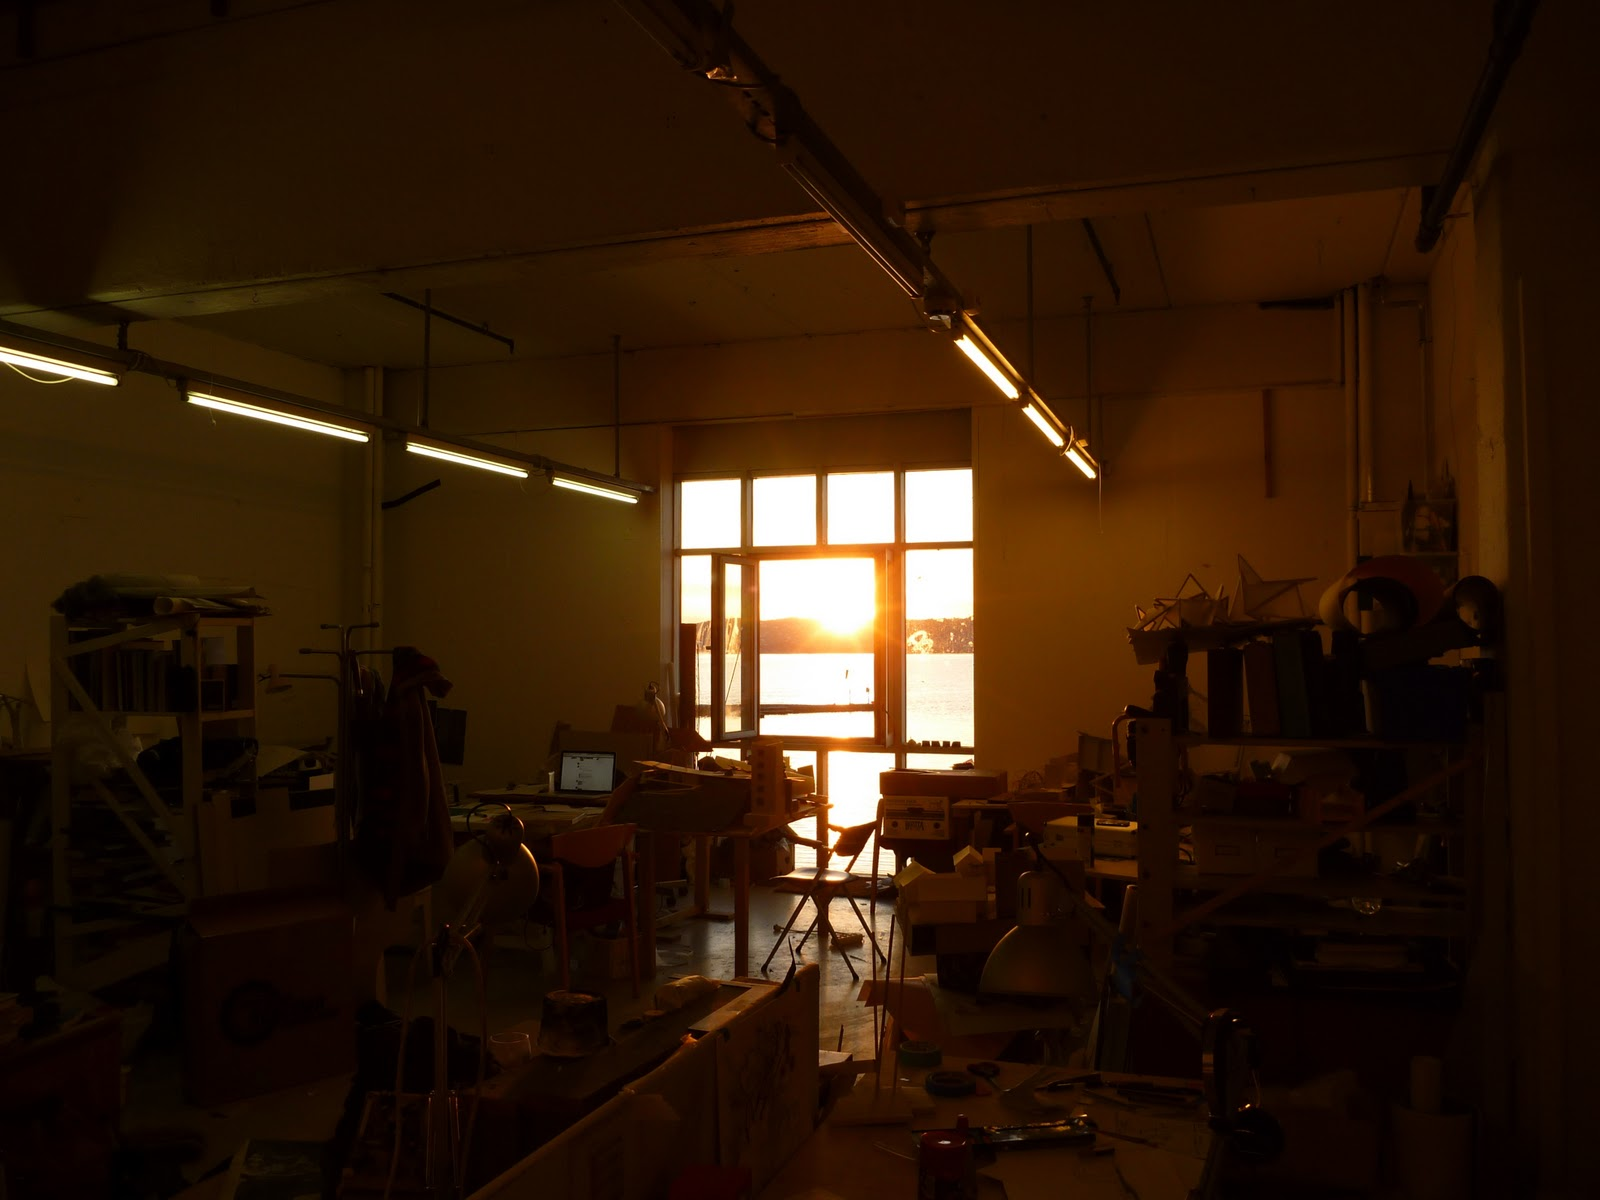 SUNSET IN AN EMPTY CLASSROOM